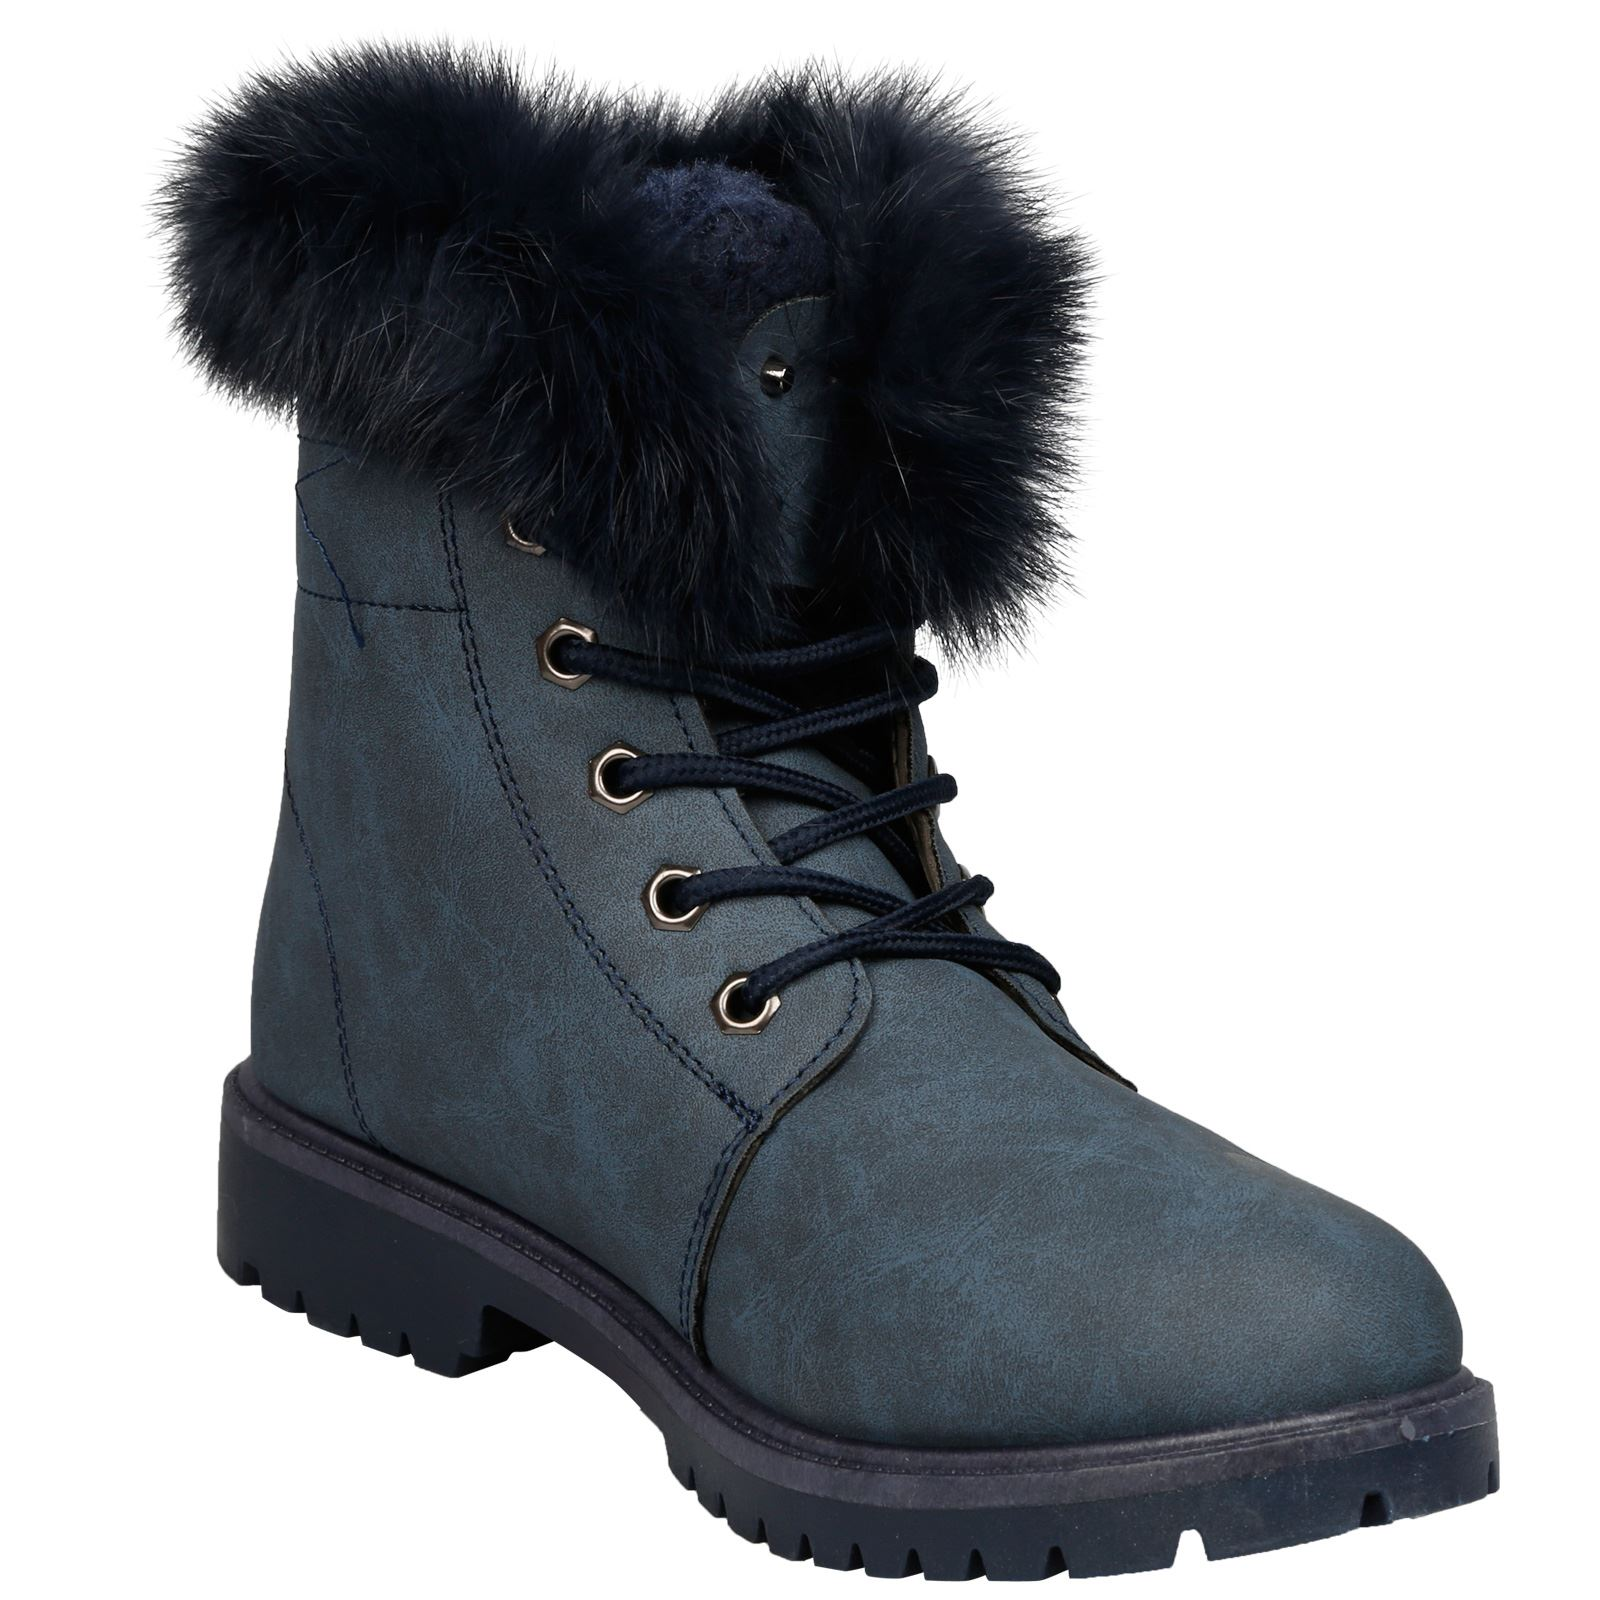 NEW-WOMEN-SHOES-LADIES-FUR-LINED-LOW-HEEL-LACE-UP-ANKLE-BOOTS-CASUAL-STYLE-SIZE thumbnail 25